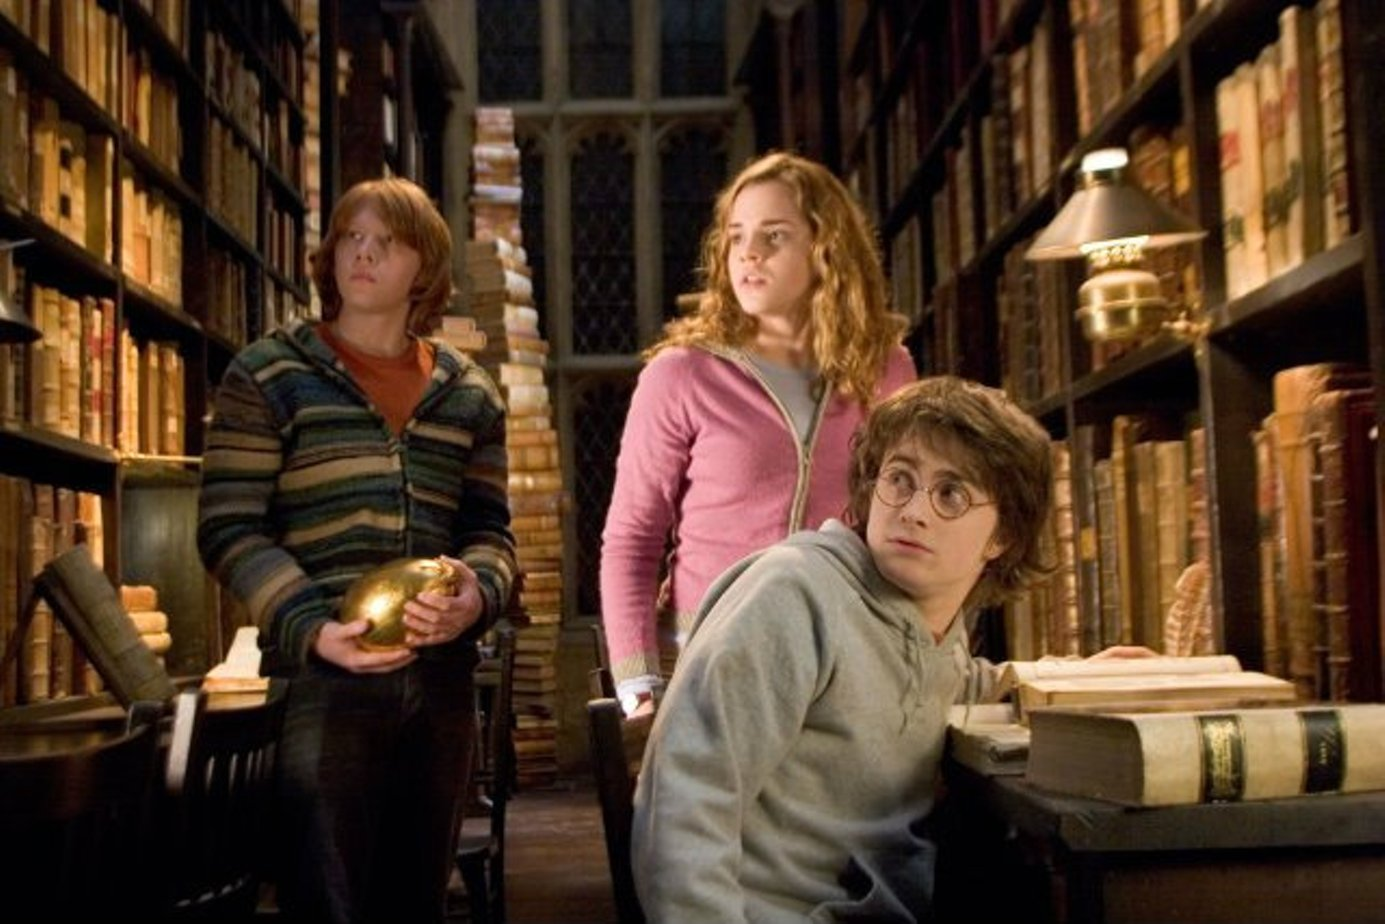 """harry potter and culture industry essay Fantasy literature as a genre of popular culture harry potter and lord of the rings term paper or essay culture is an """"industry"""" which aims at """"mass."""